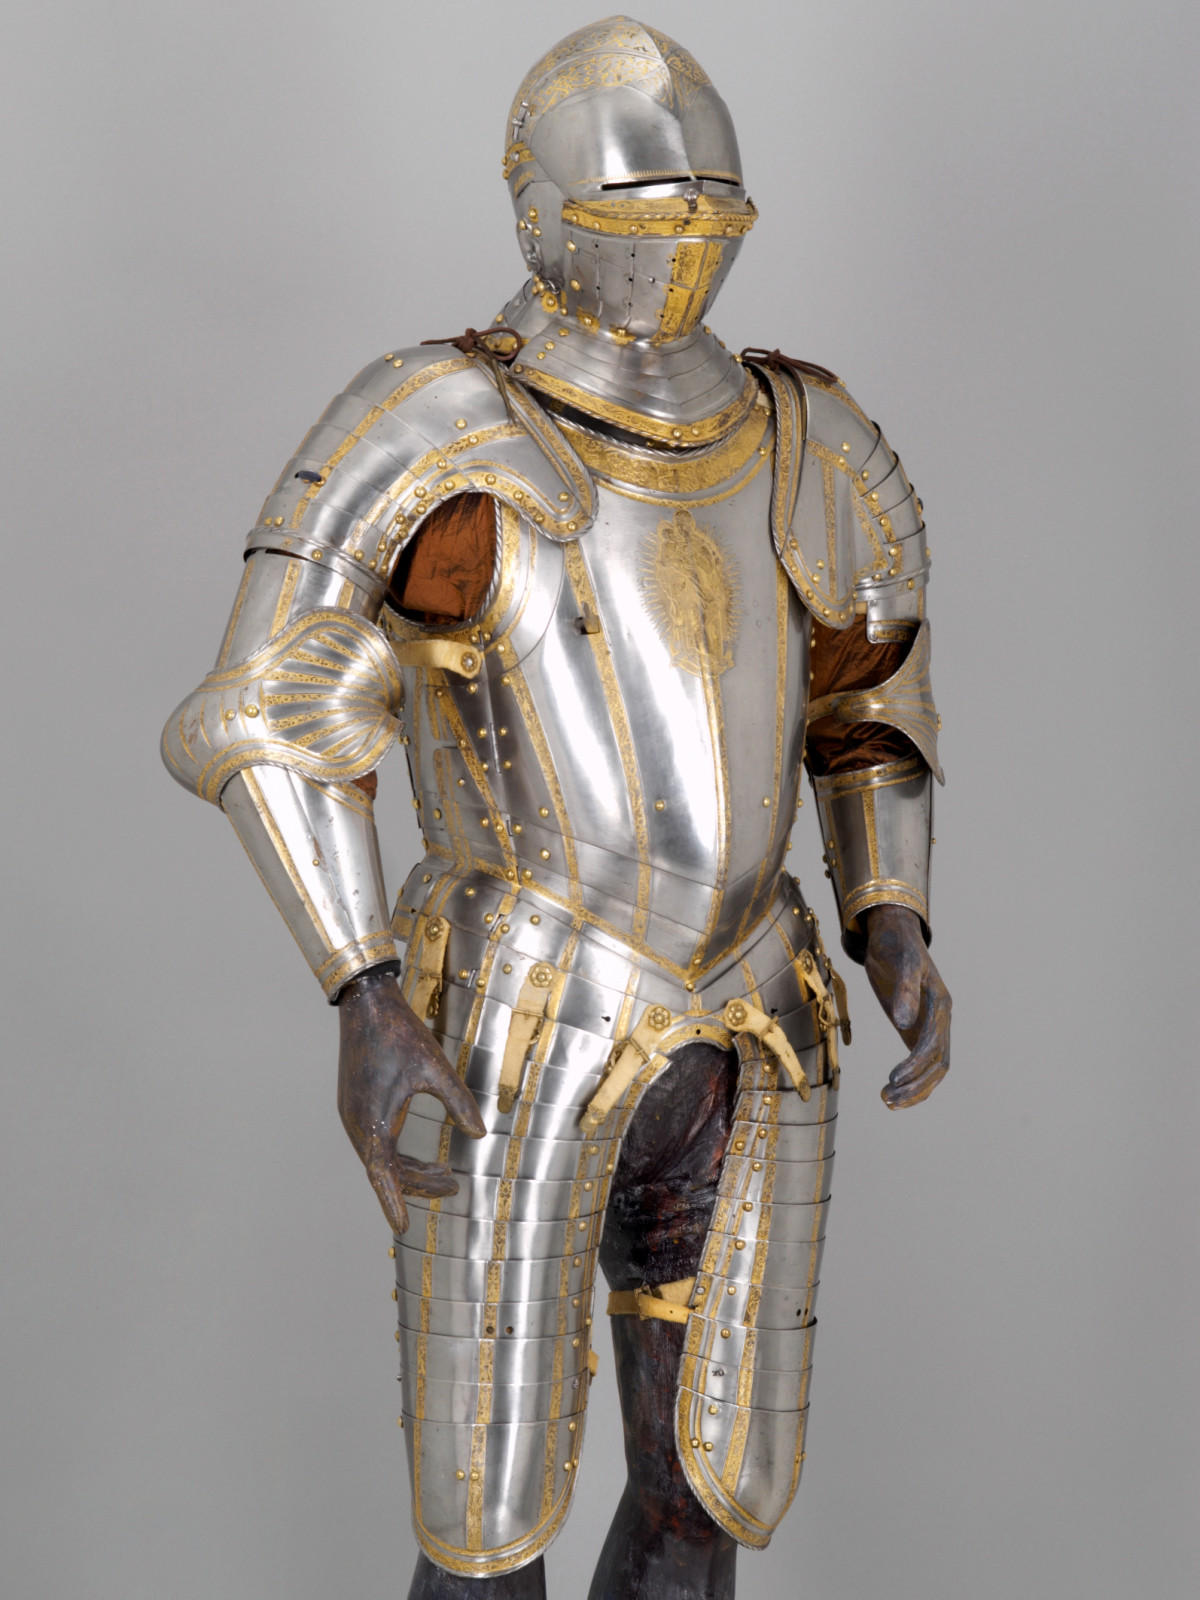 Habsburg Splendor, Light Half‐armor of Emperor Charles V